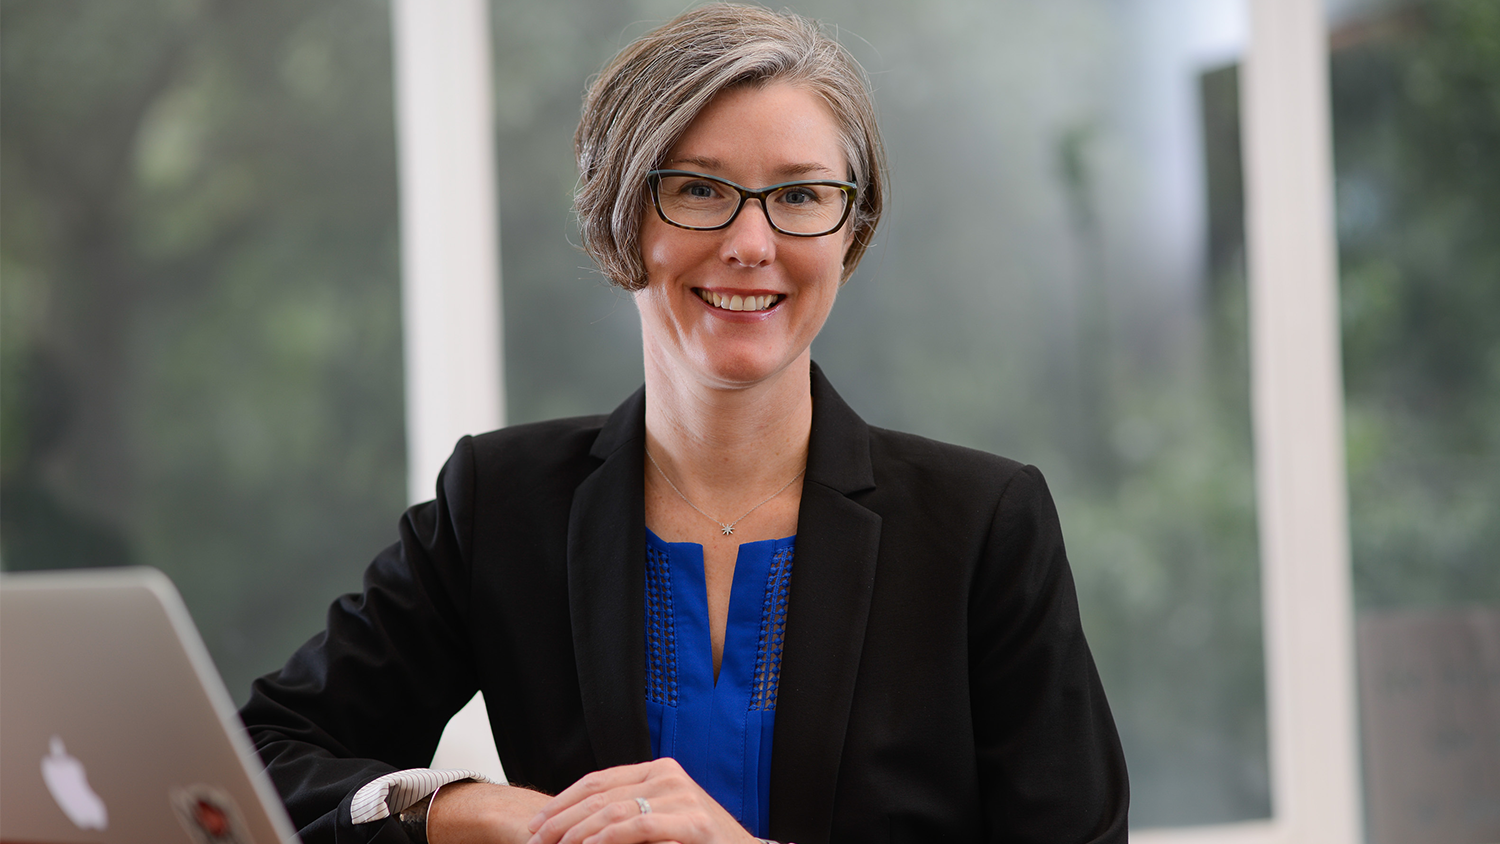 NC State College of Education Assistant Professor K.C. Busch, Ph.D.